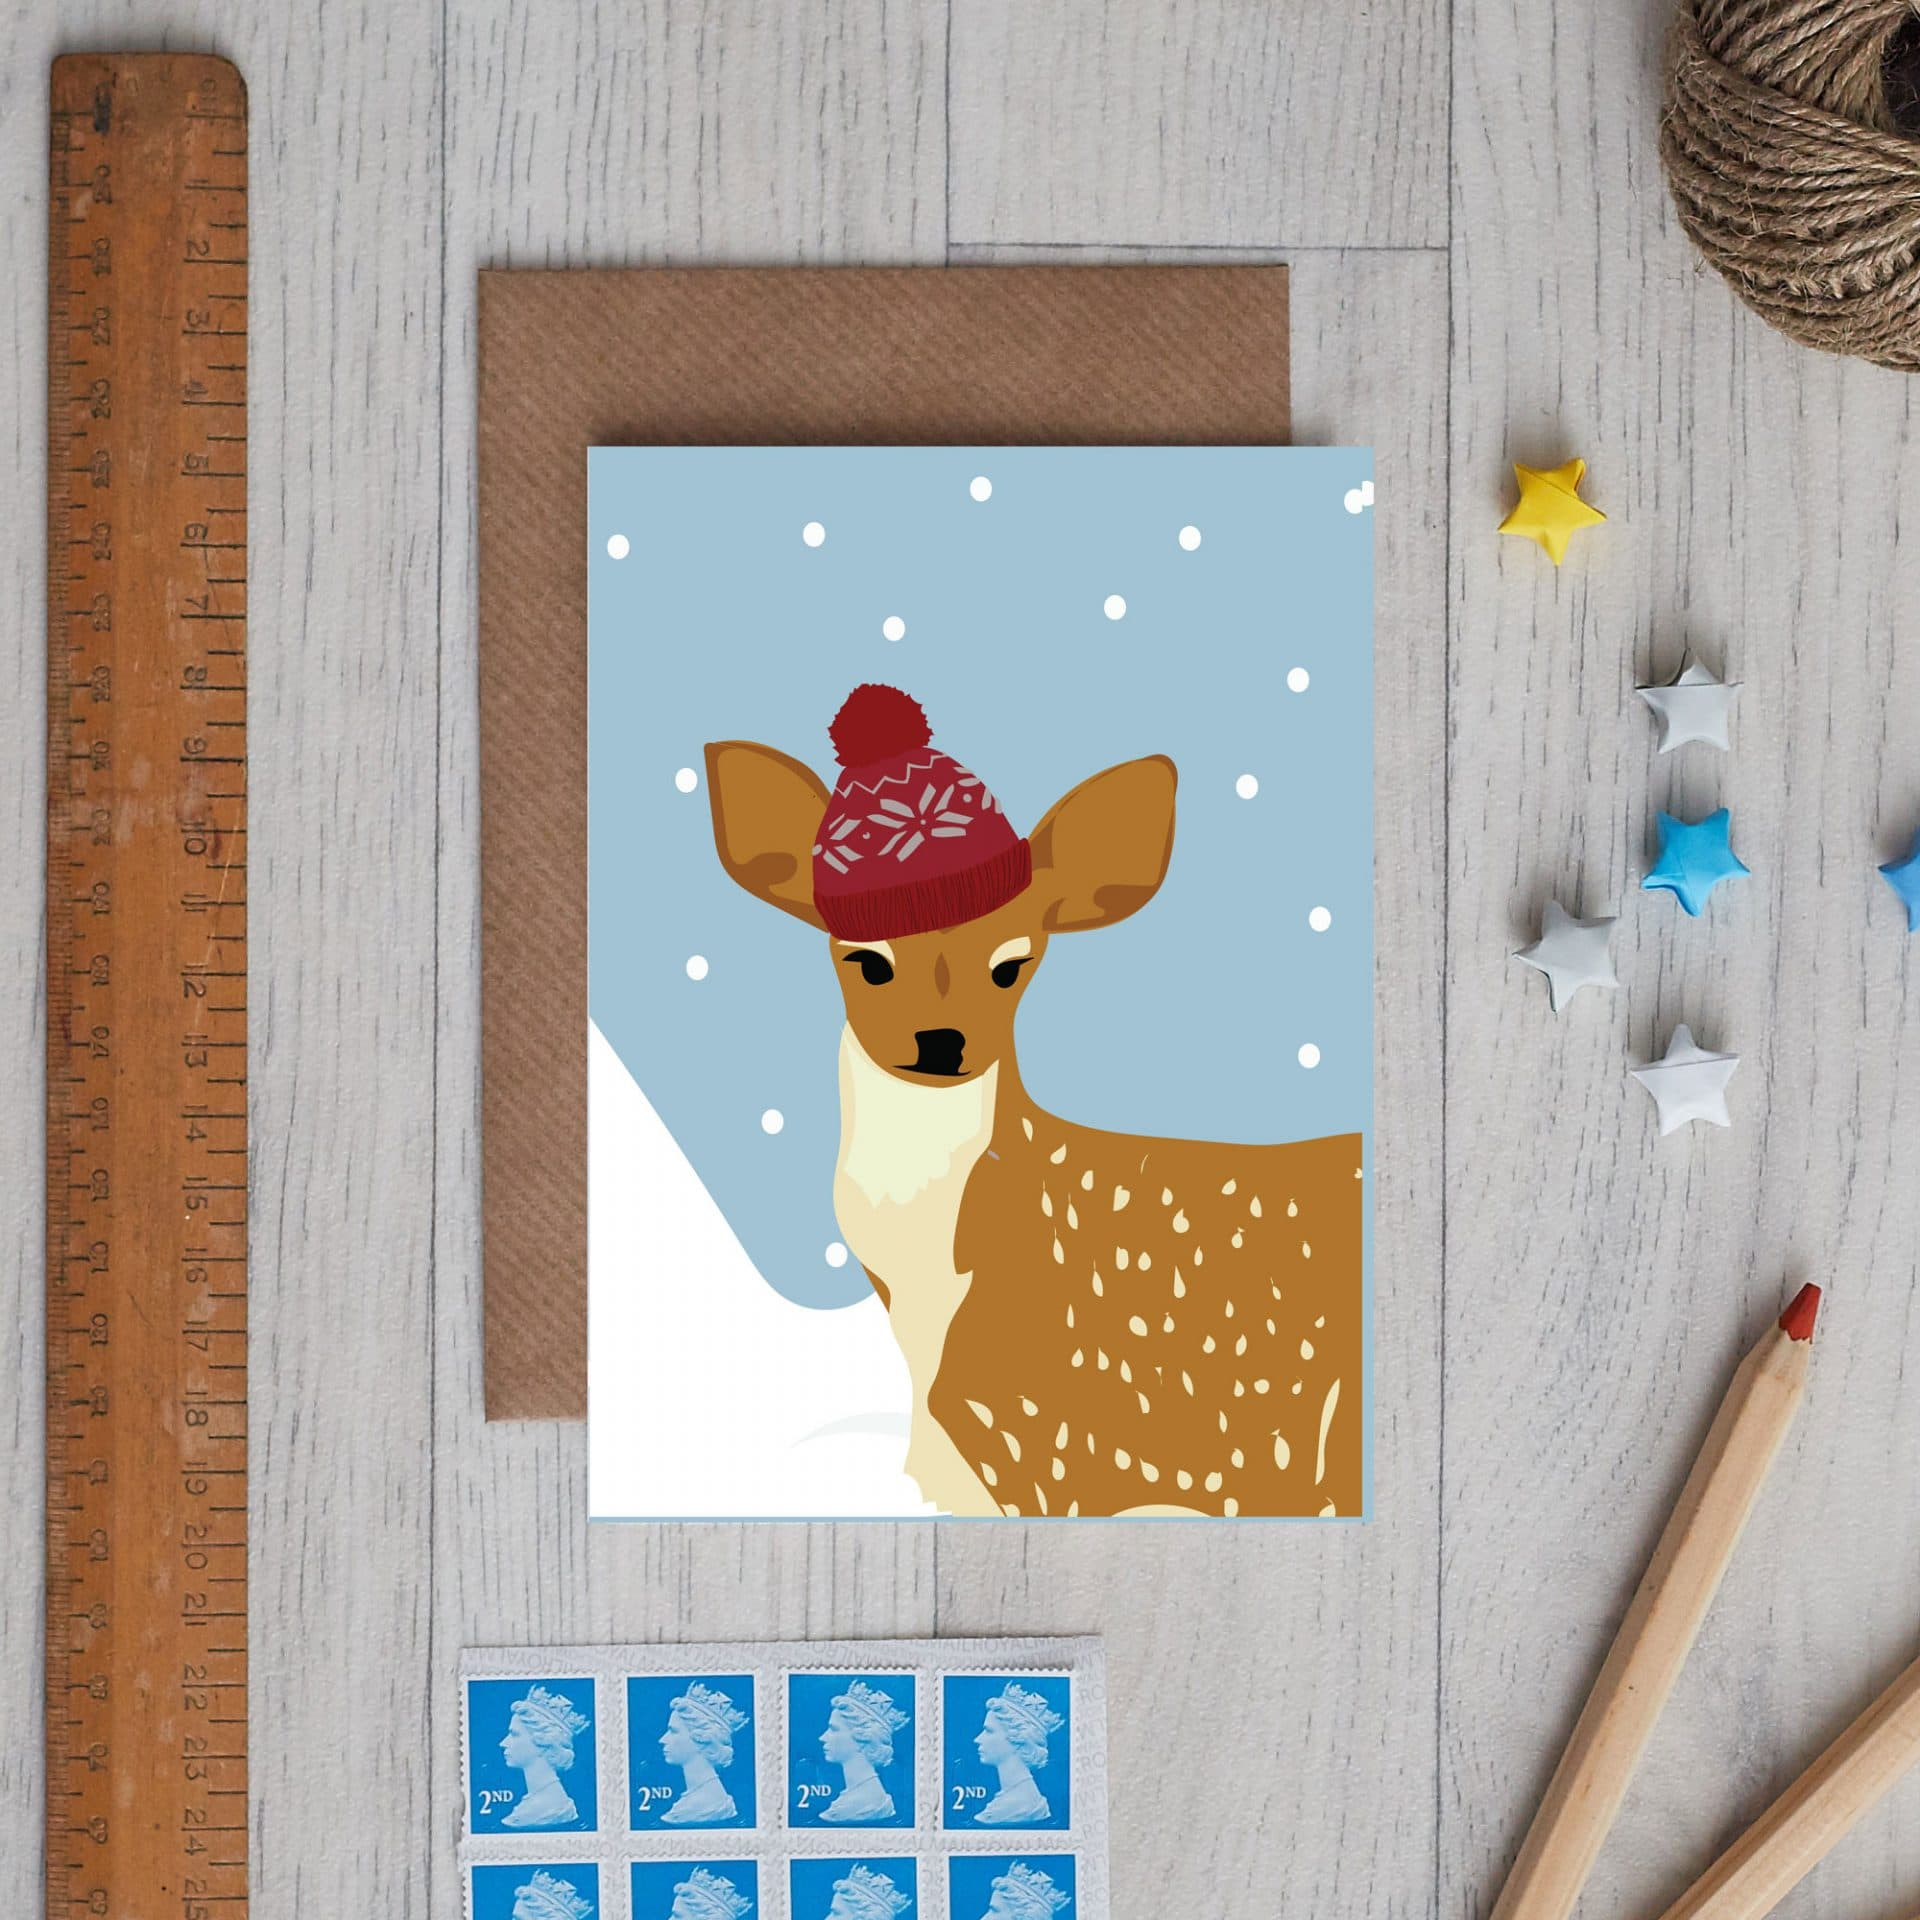 Christmas Card Luxury Designer Personalised Message Sustainable Environmentally Friendly FSC Paper Plastic Free - Christmas Deer card by Lorna Syson